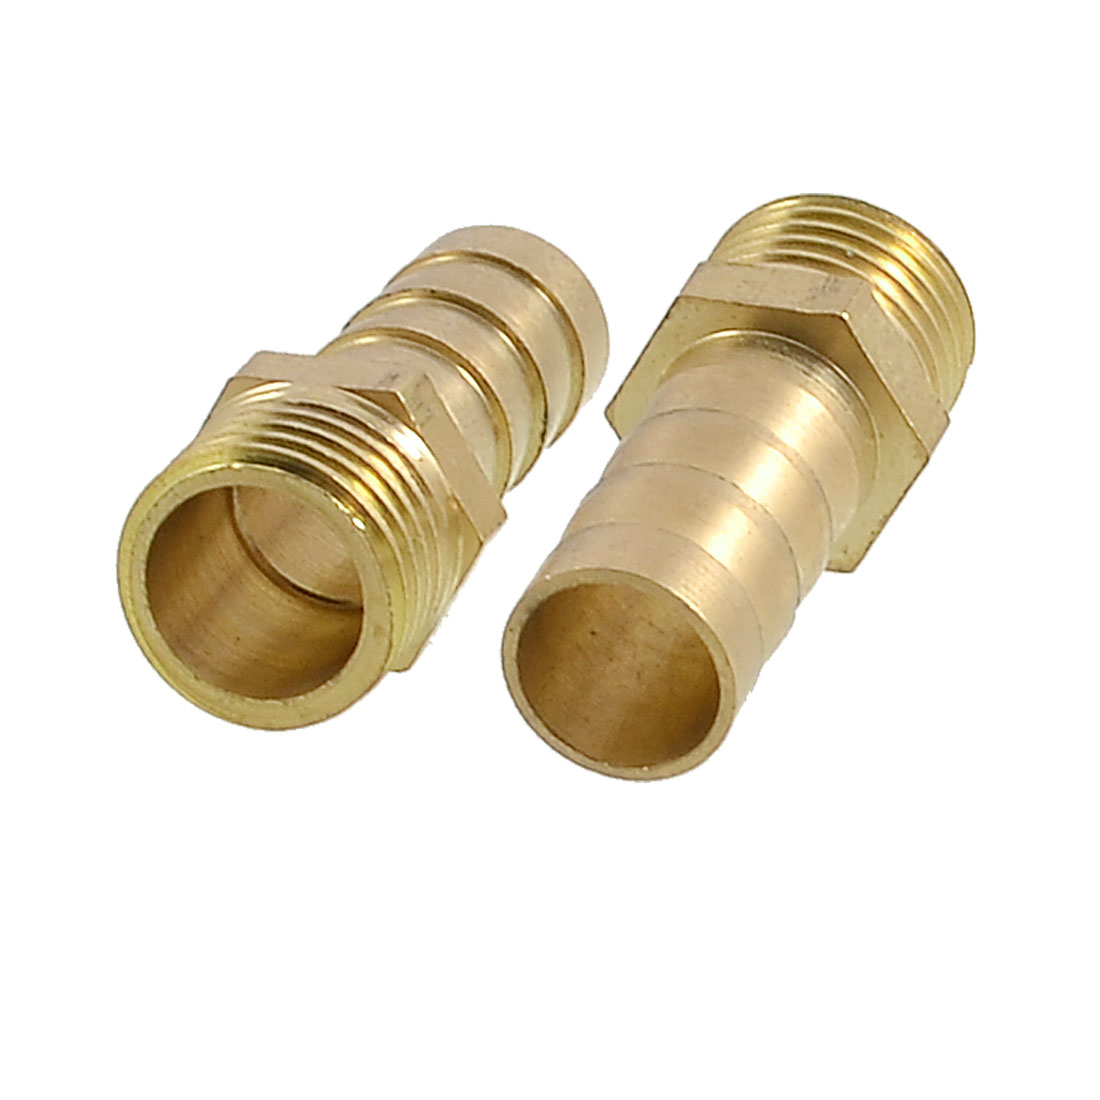 "2 x 10mm Hose 1/4"" PT Thread Brass Straight Barb Barbed Connectors"